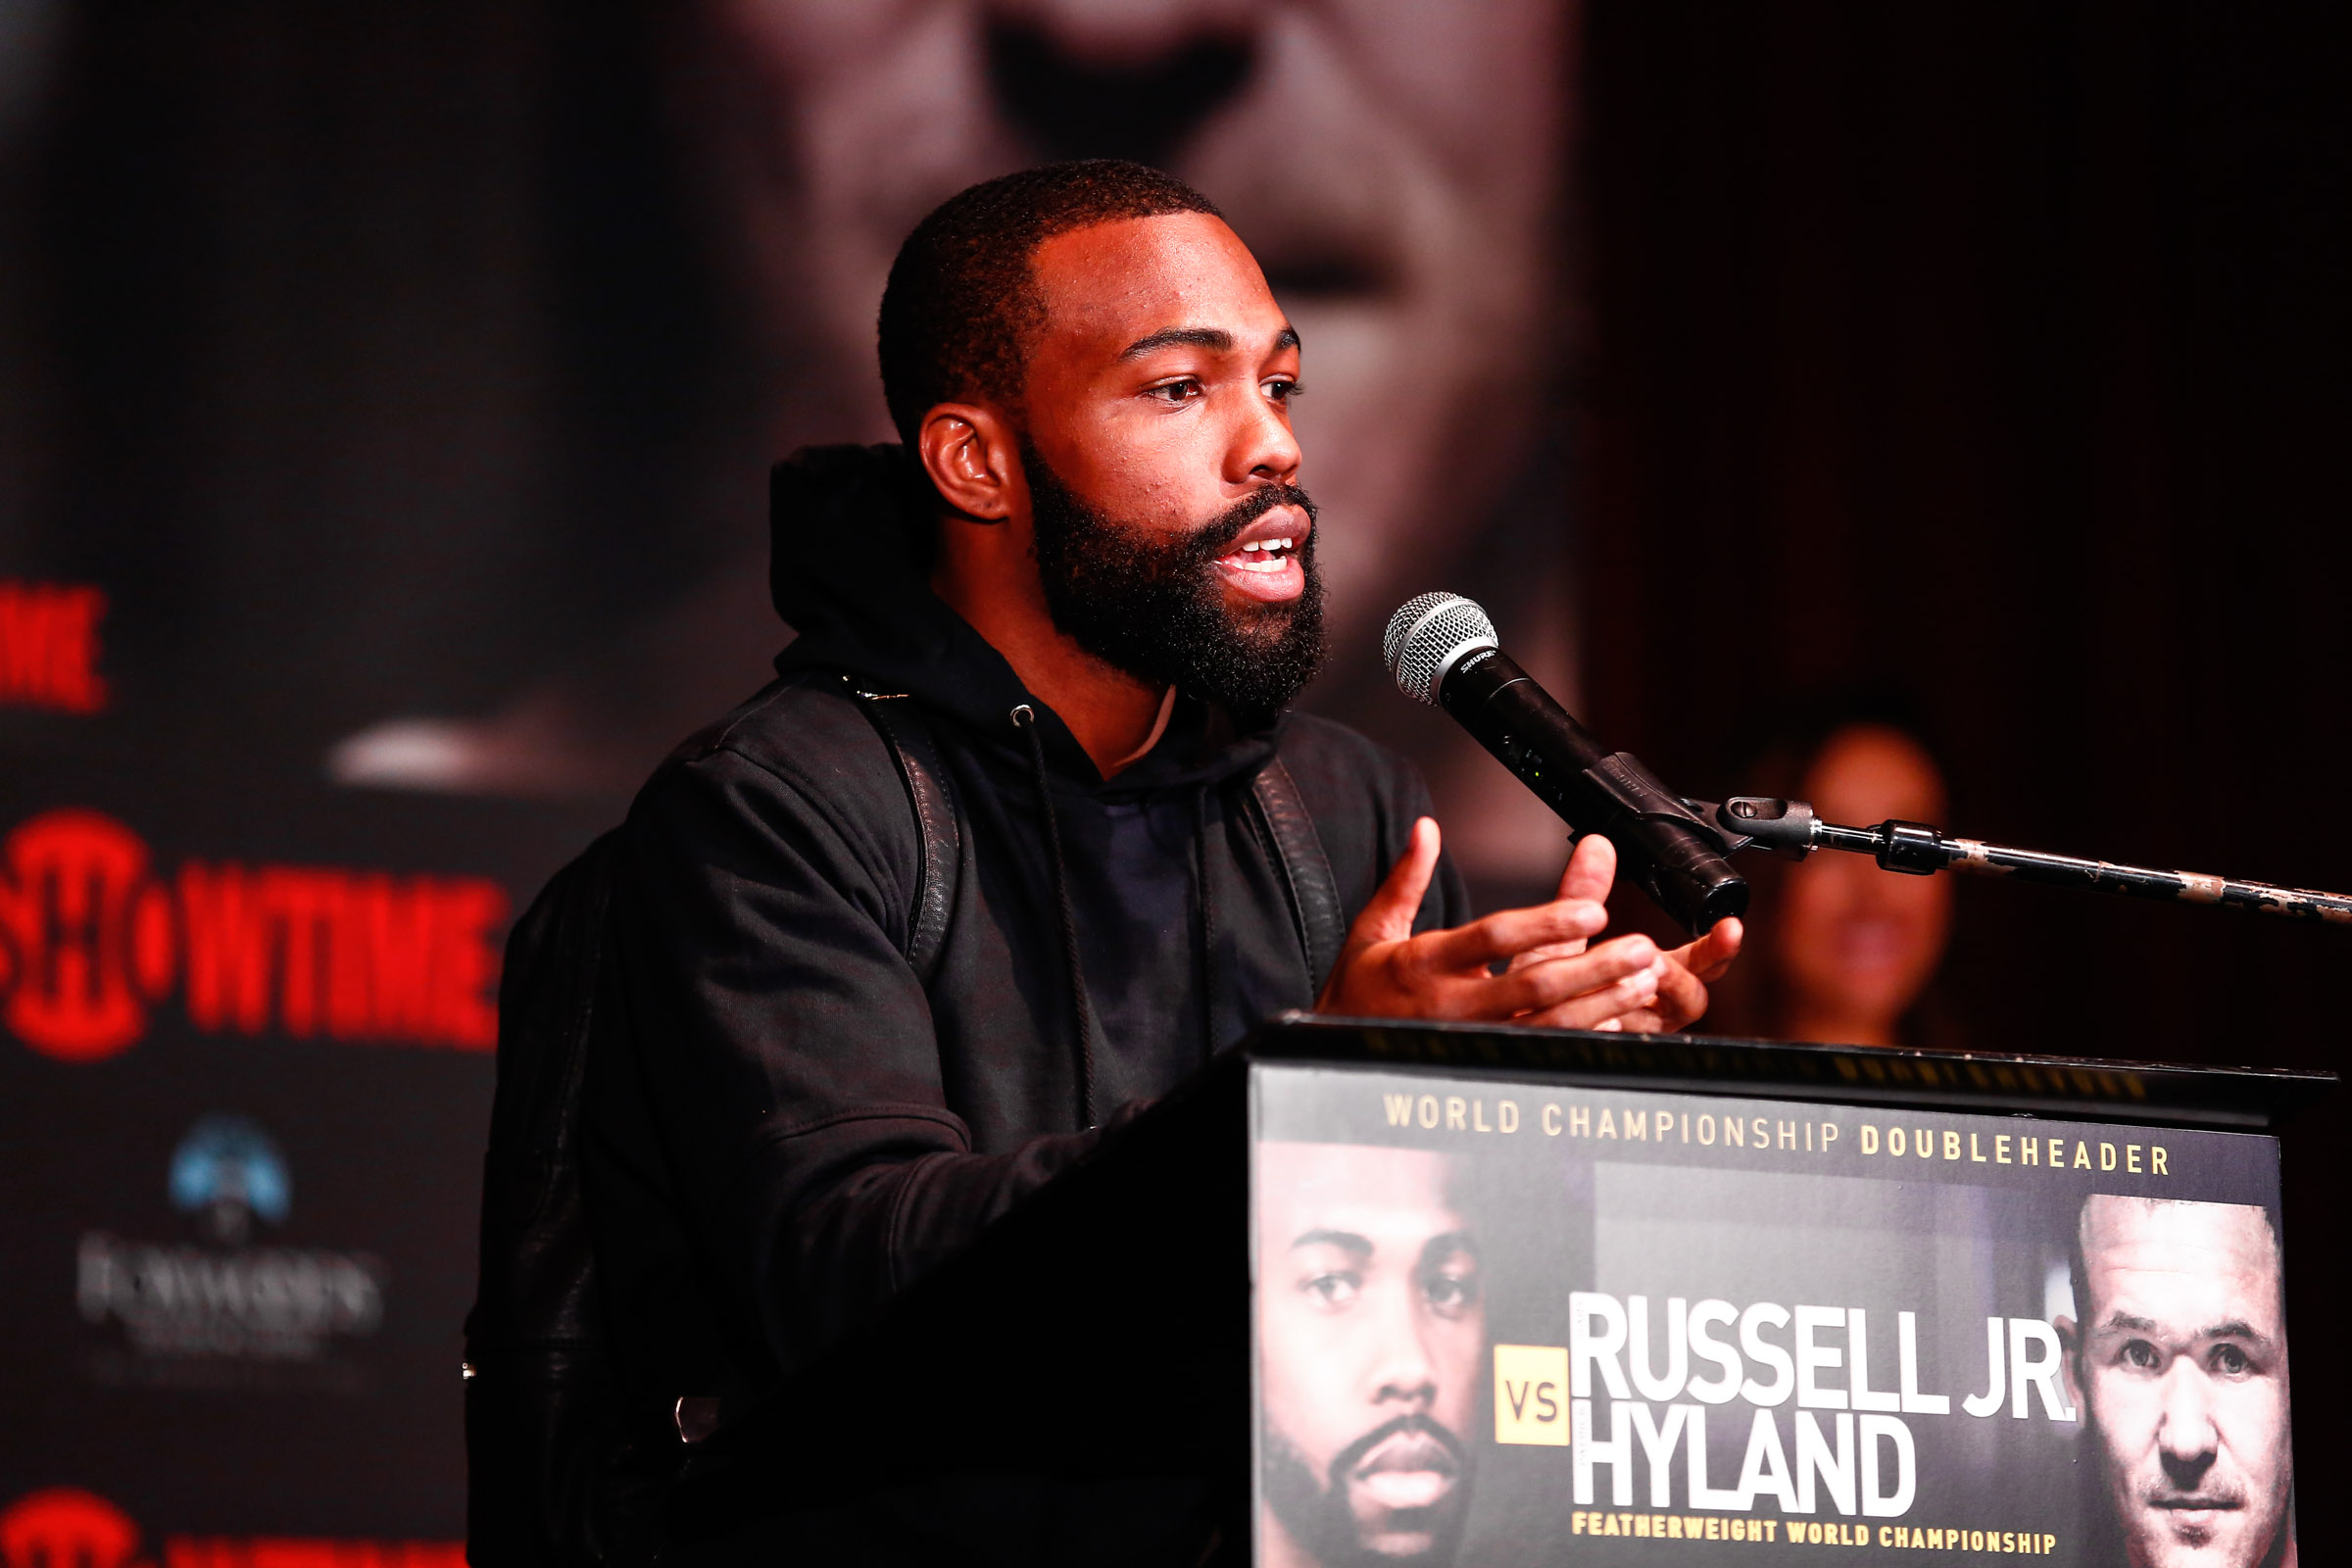 Gary Russell Jr - Stephanie Trapp/Showtime